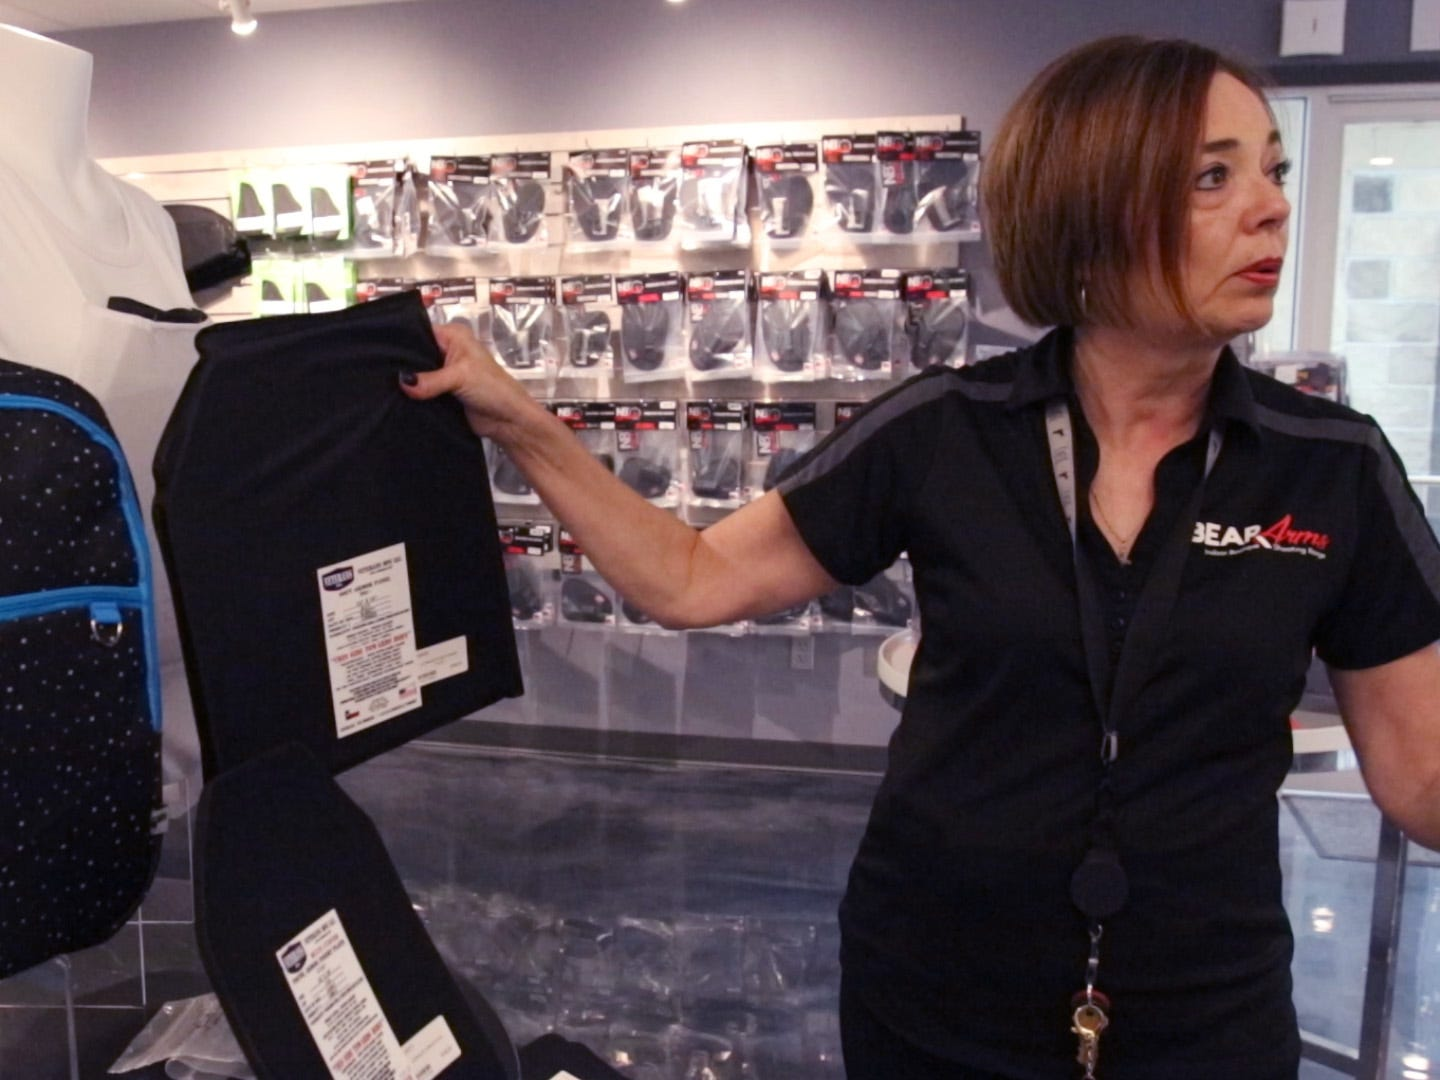 Cheryle Rebholz talks about ballistic plates that can be inserted in clothing, a backpack or other apparel that is offered at Bear Arms in Mequon, a boutique indoor shooting range that serves the family market.